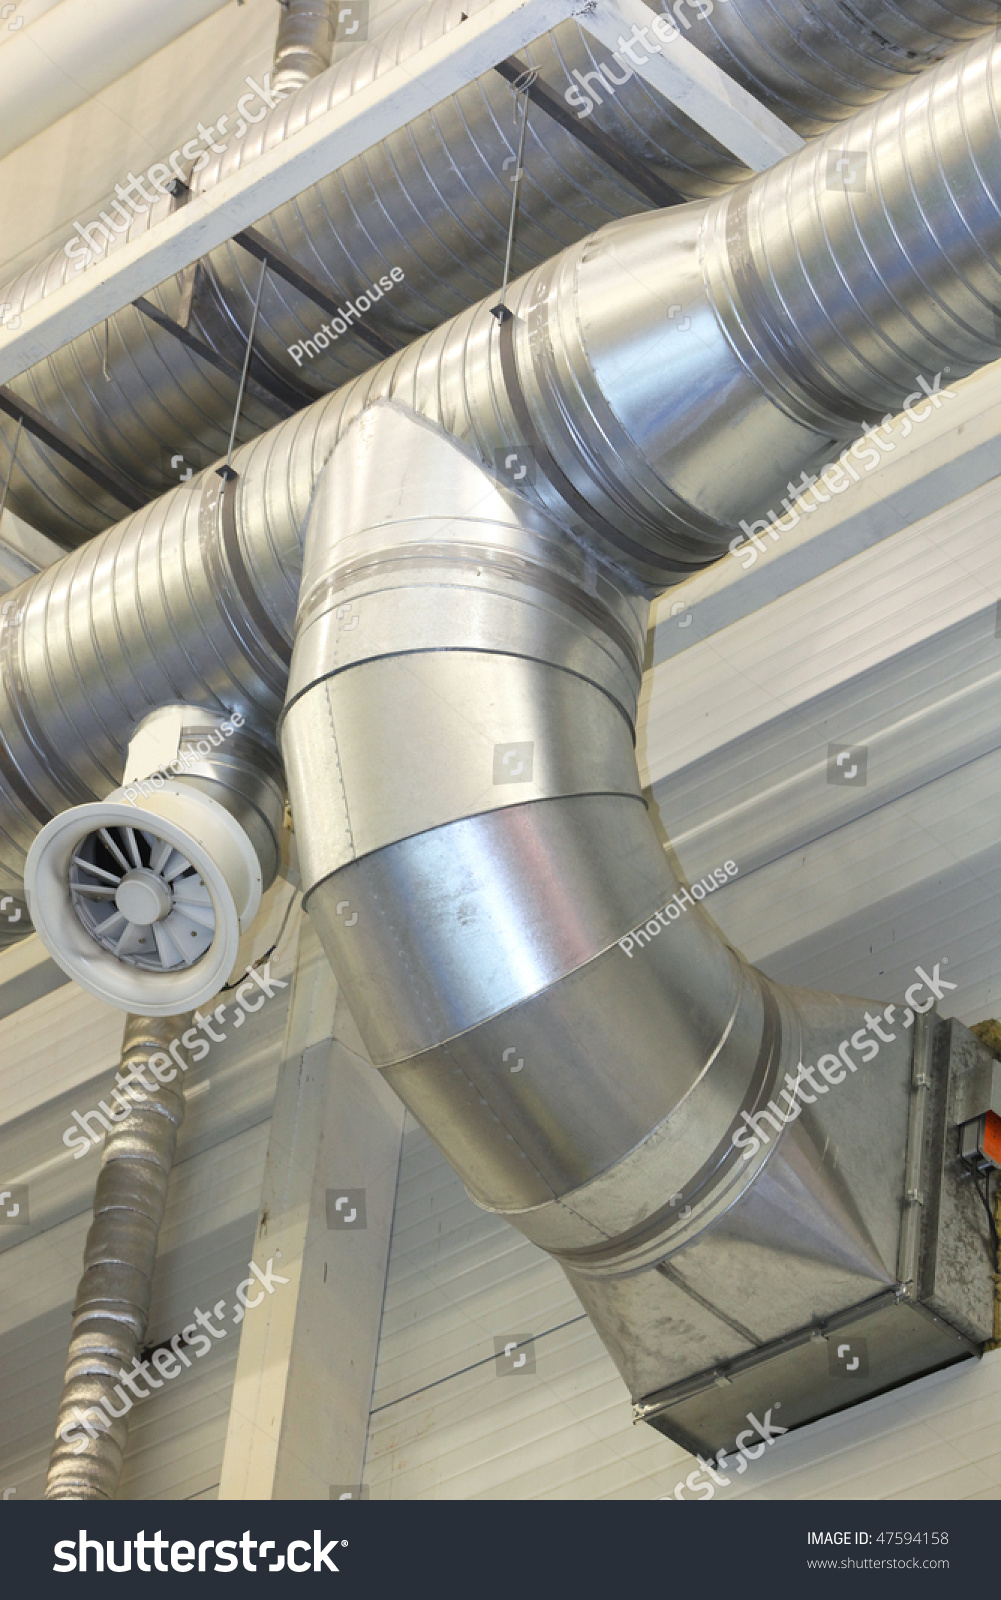 Ventilation Pipes Of An Air Condition Stock Photo 47594158 : Shutterstock